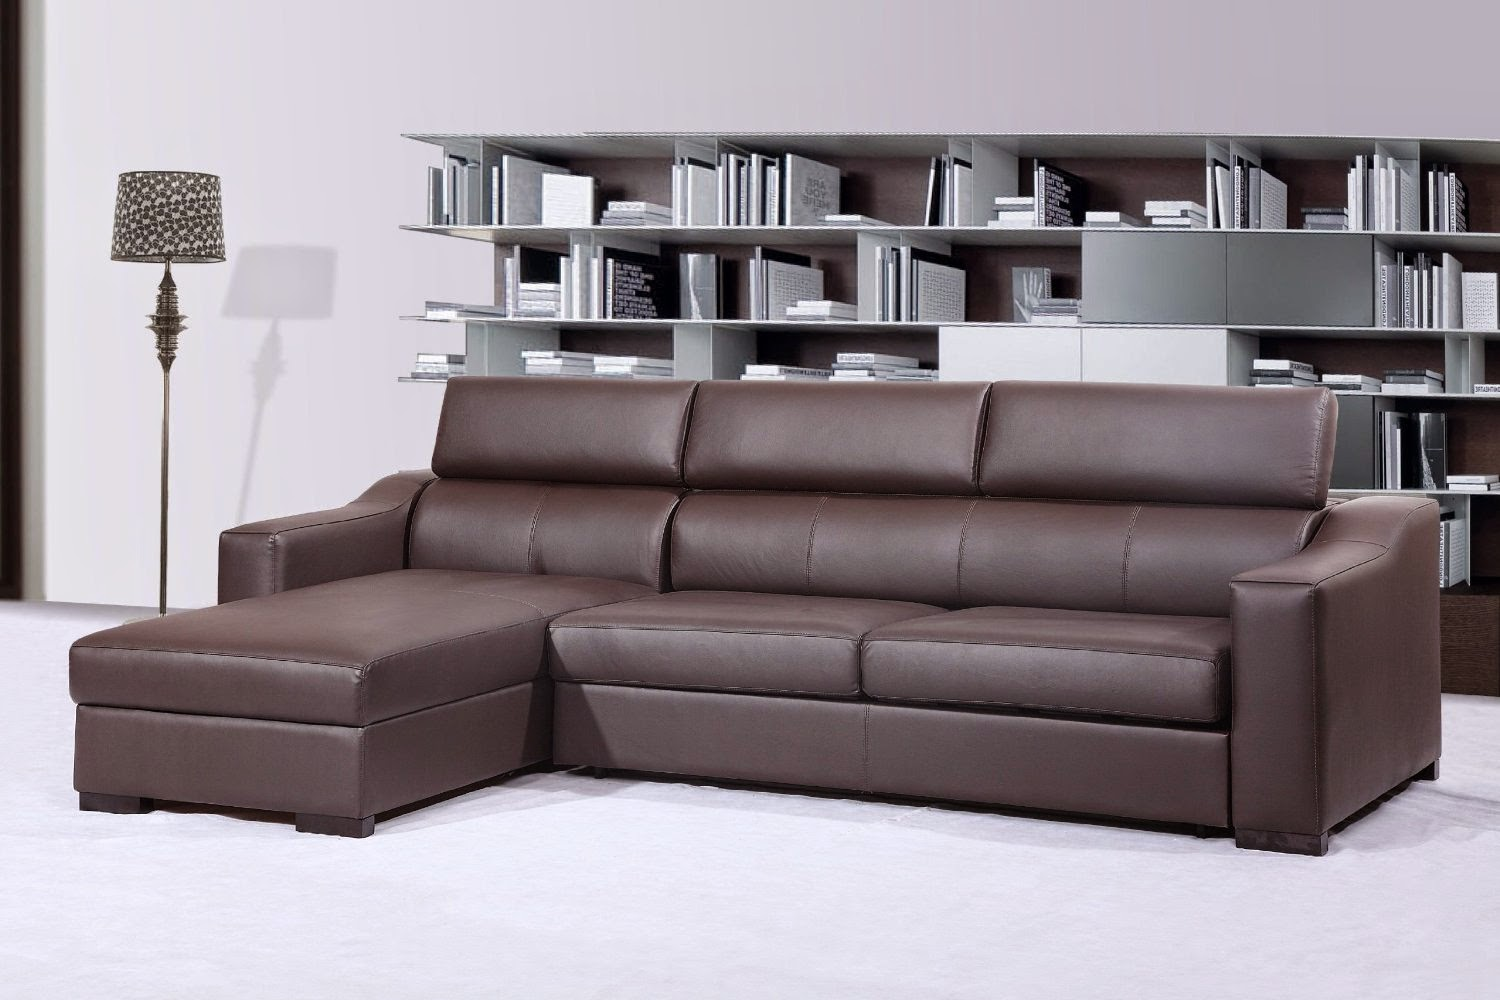 Astonishing The Best Sectional Sleeper Sofa Reviews Leather Sectional Andrewgaddart Wooden Chair Designs For Living Room Andrewgaddartcom